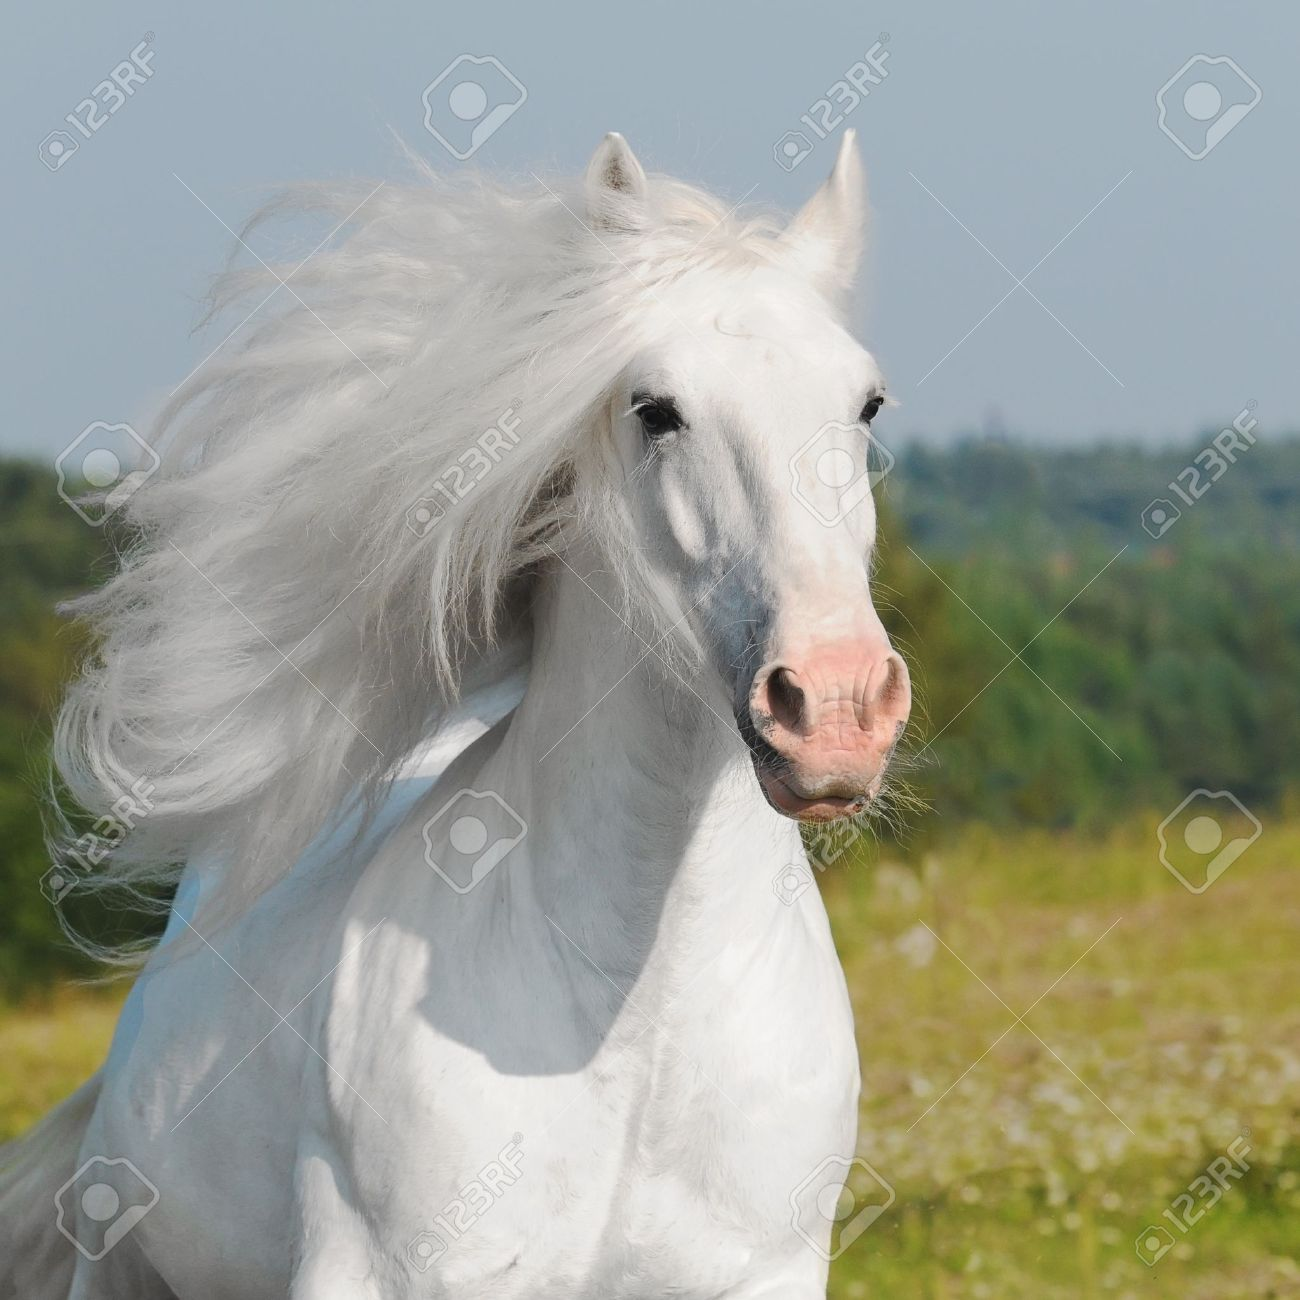 White Horse Runs Gallop Stock Photo, Picture And Royalty Free ...